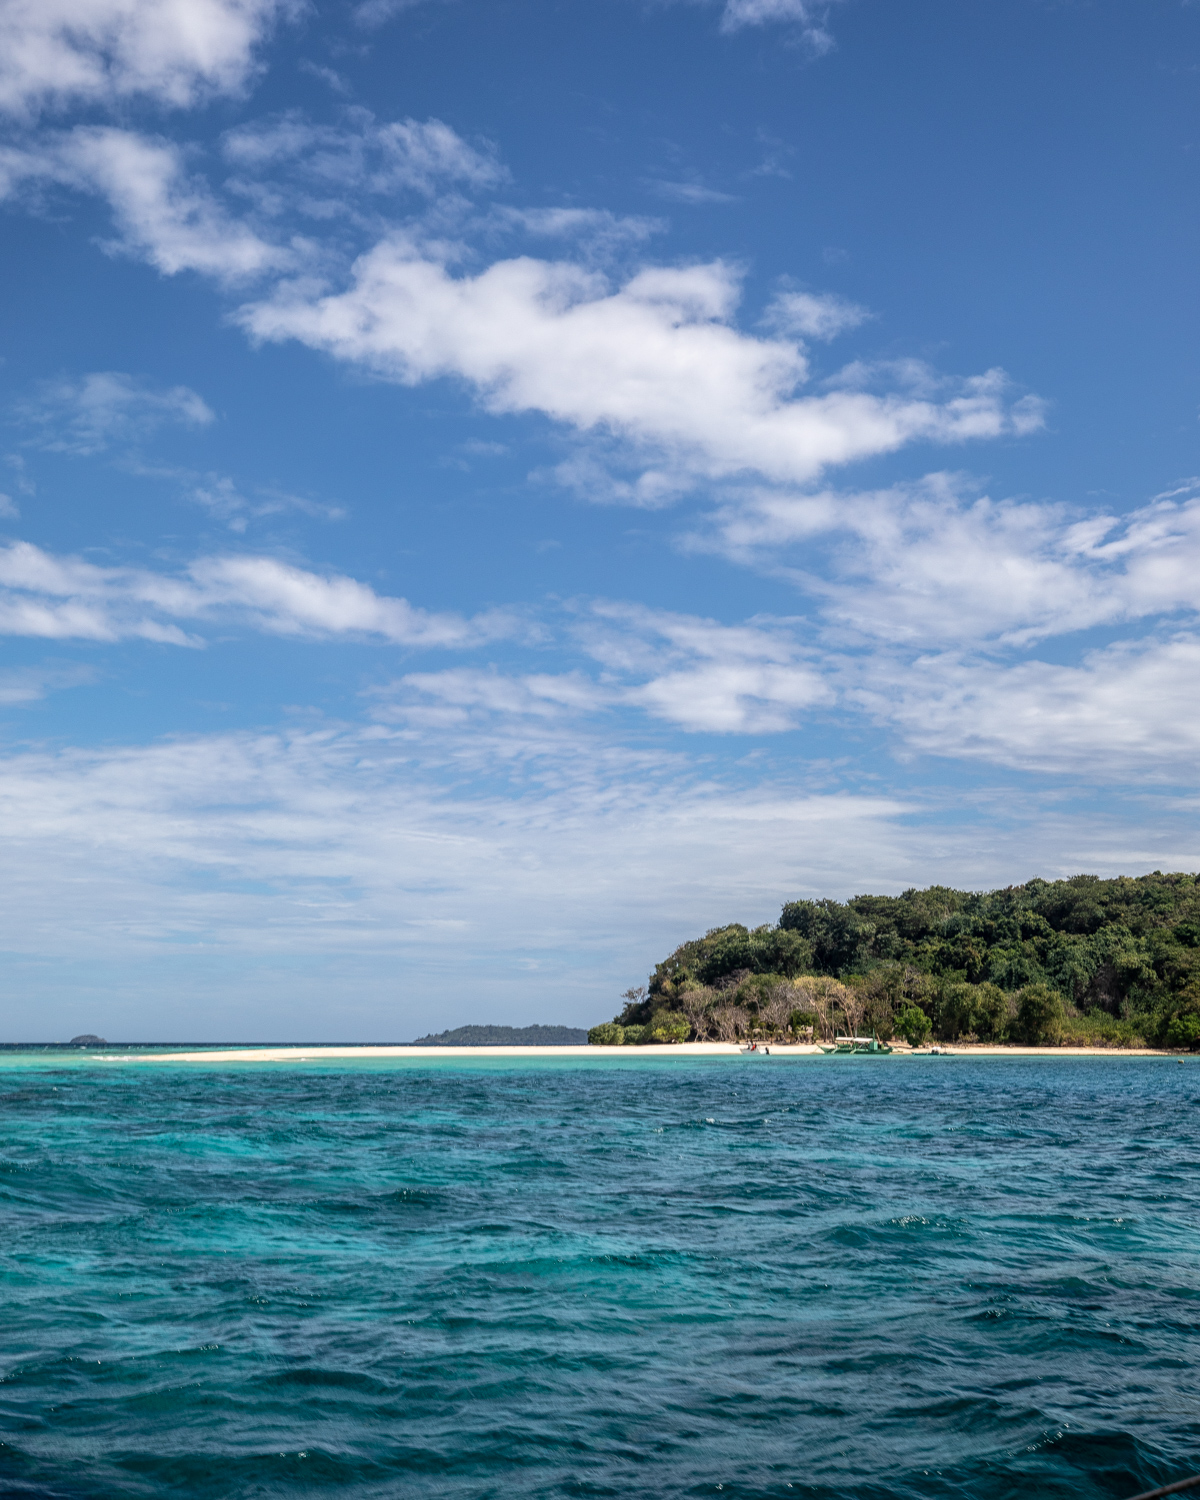 The views of Ditatayan Island from the boat, Coron Palawan